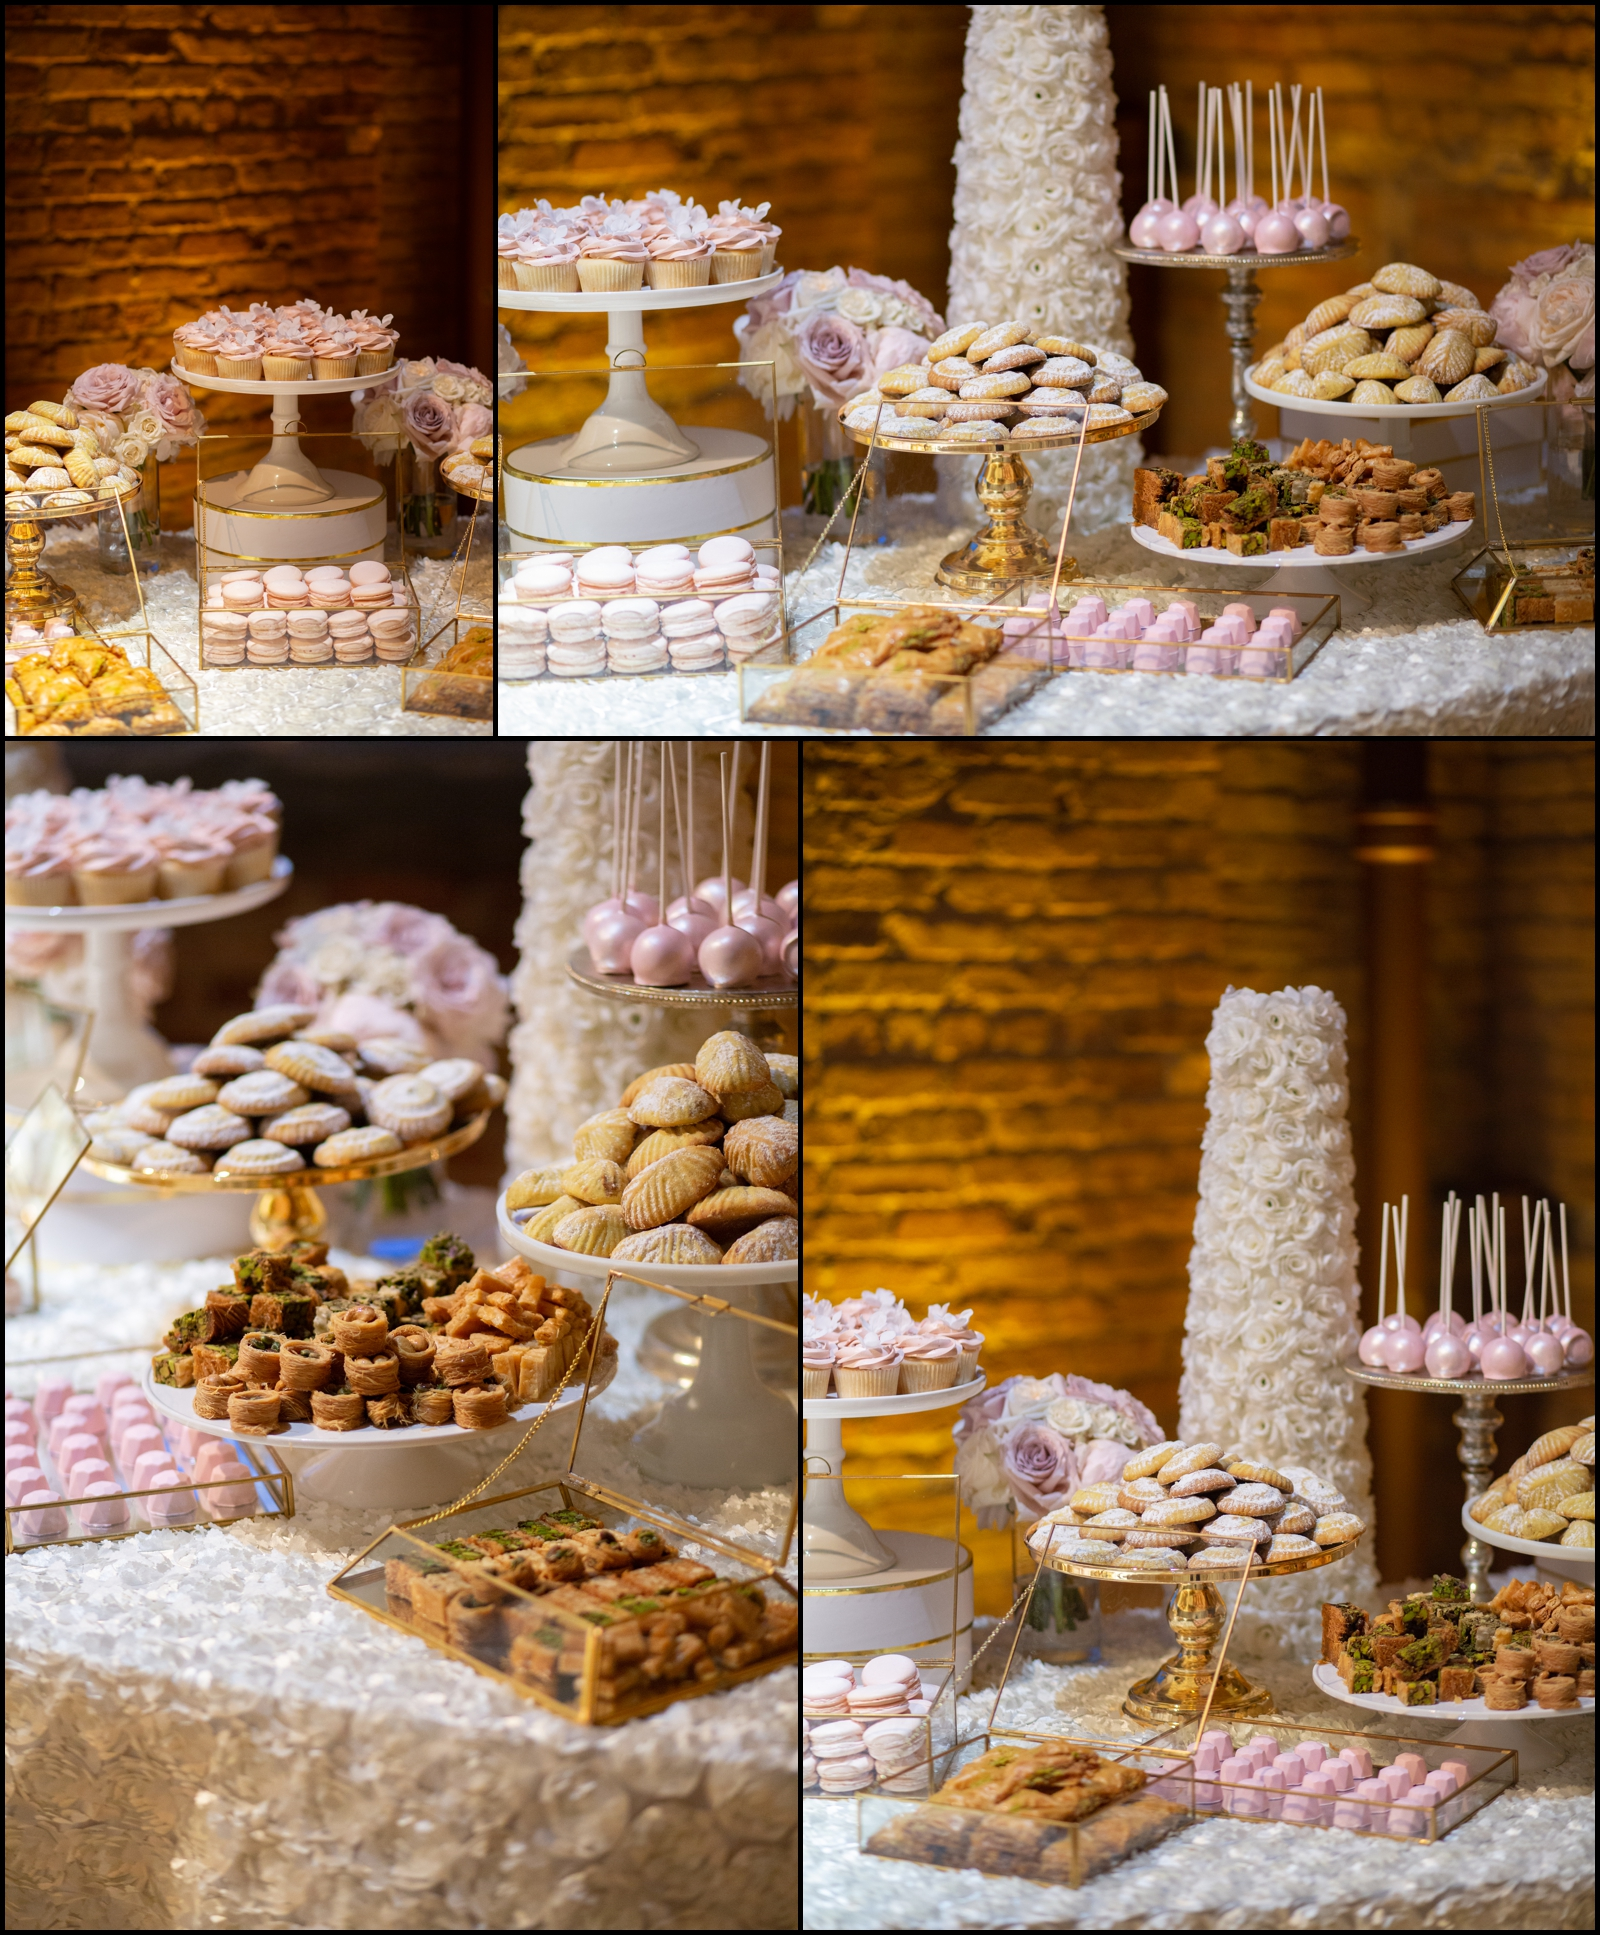 Wedding Cake and Dessert Table Display